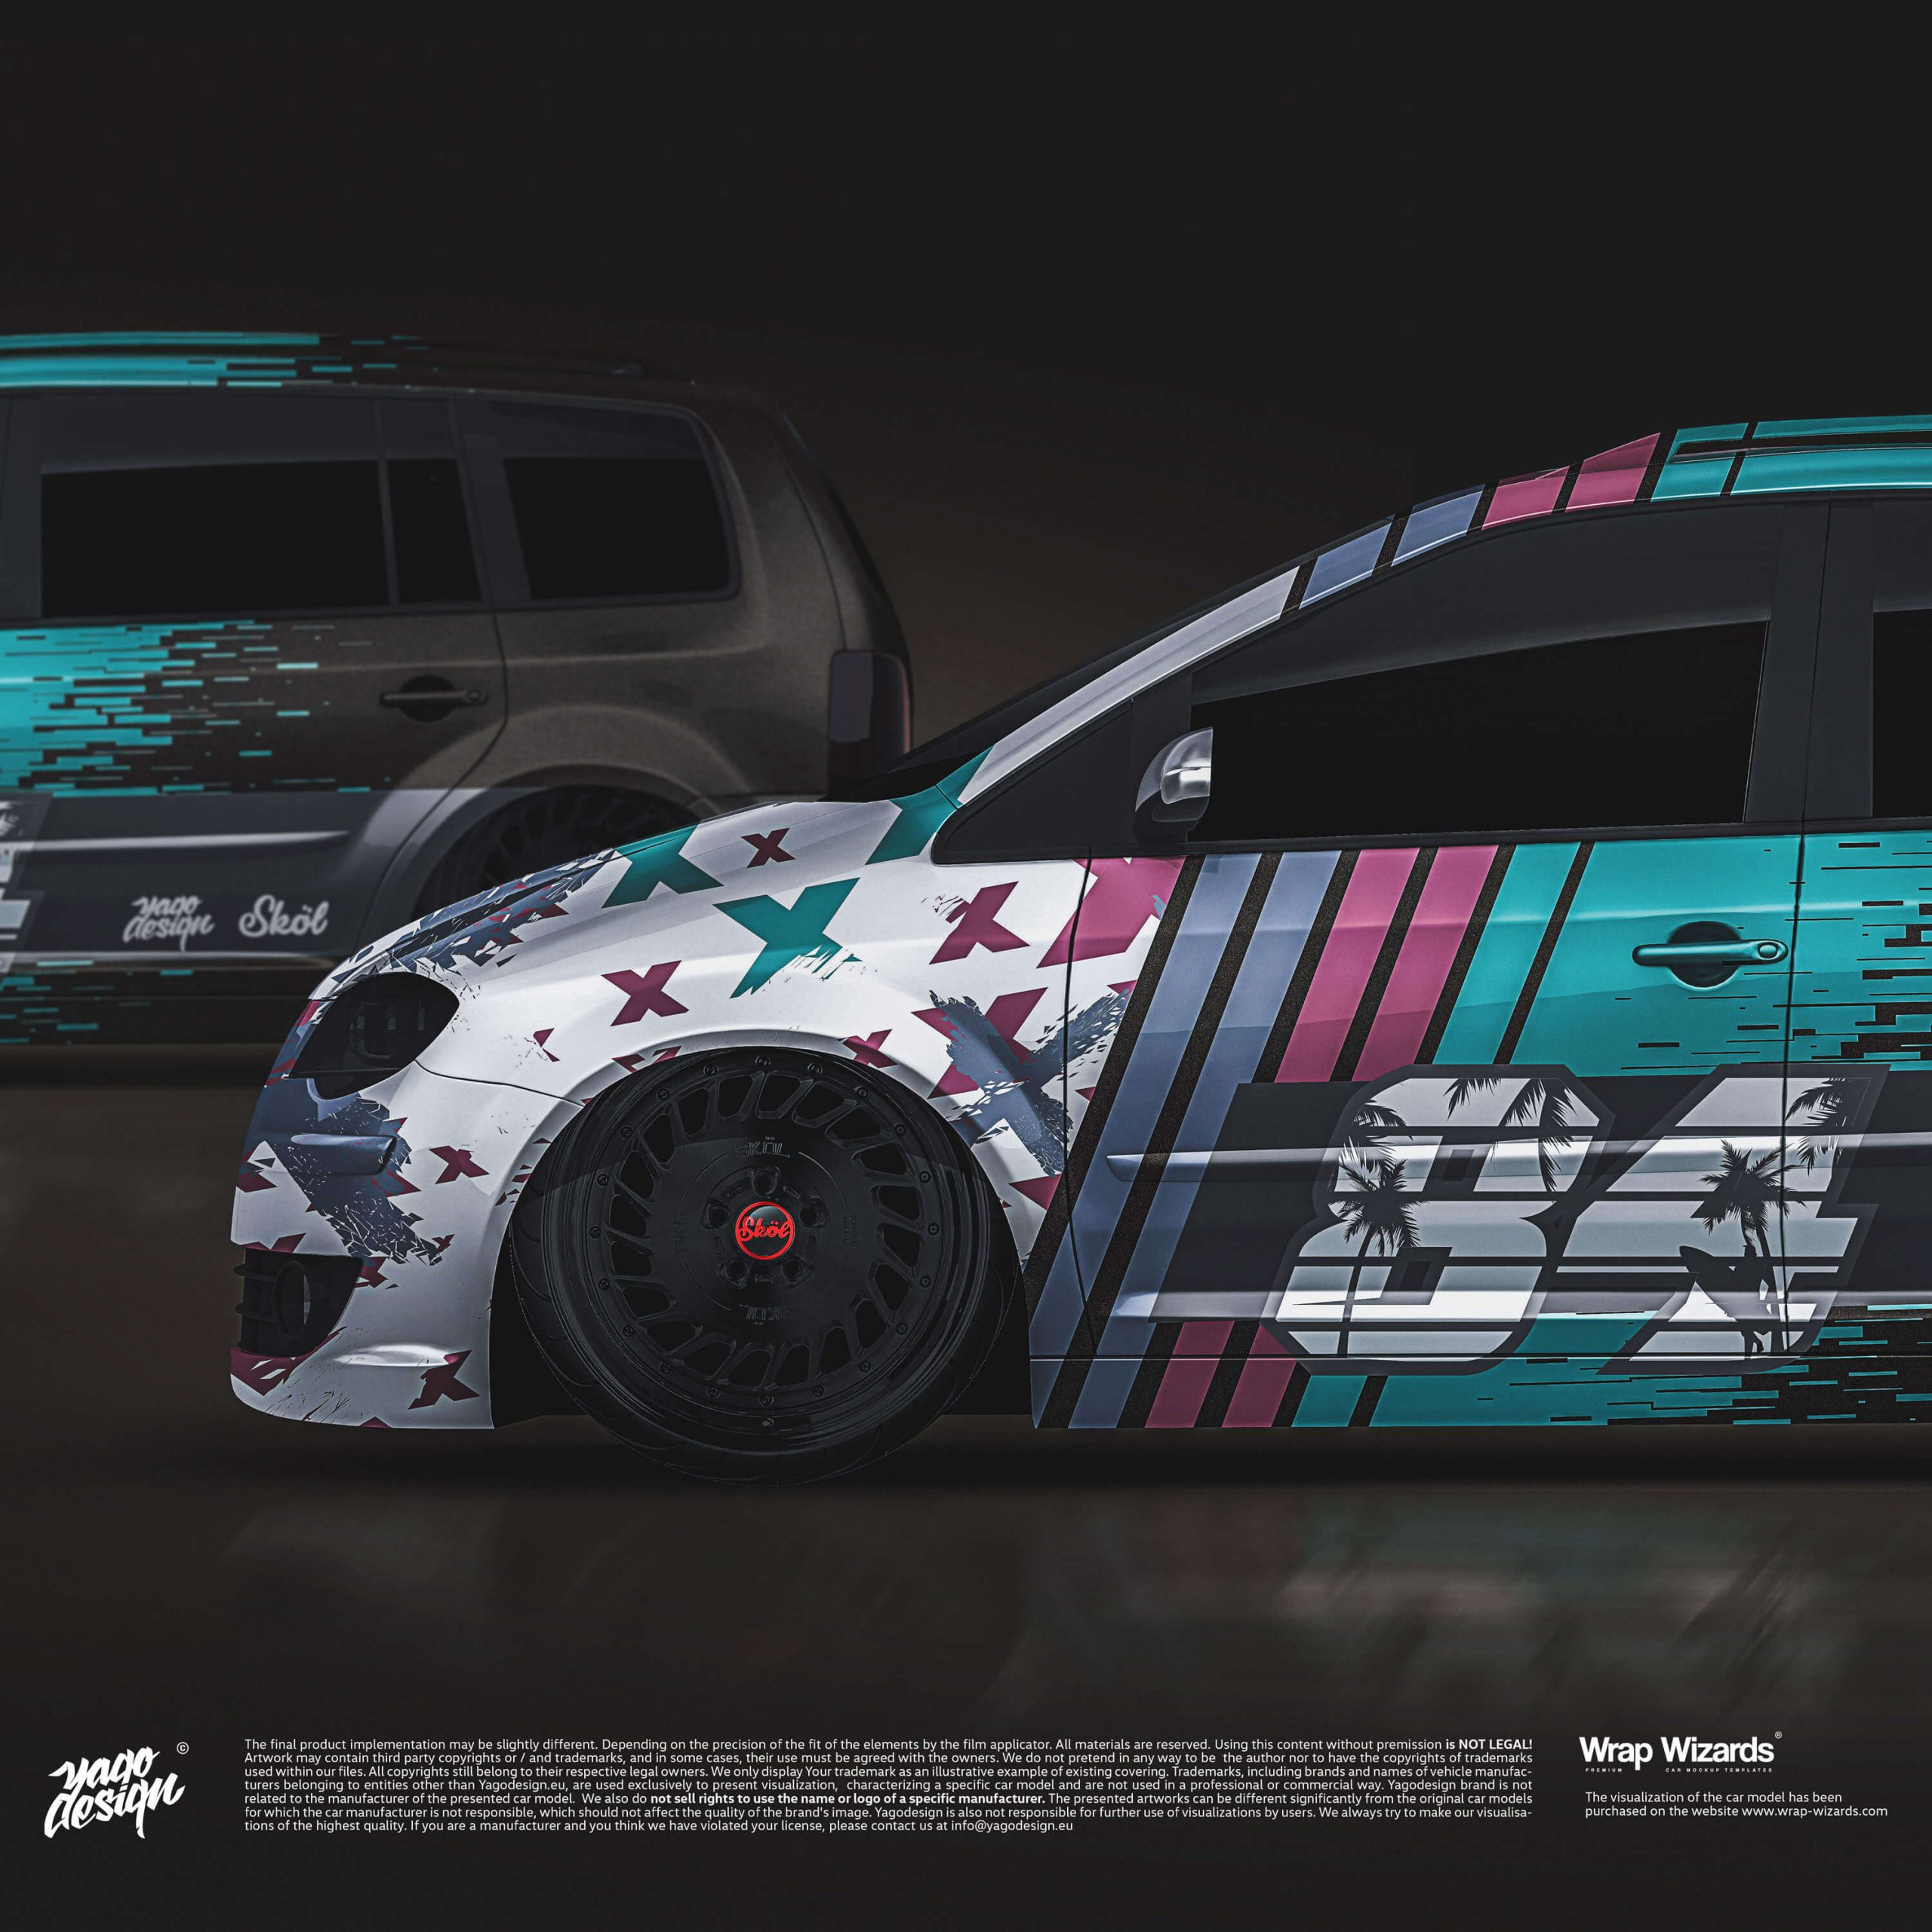 VW-Touran-2007-by-Yagodesign-2020-Car-Wrapping